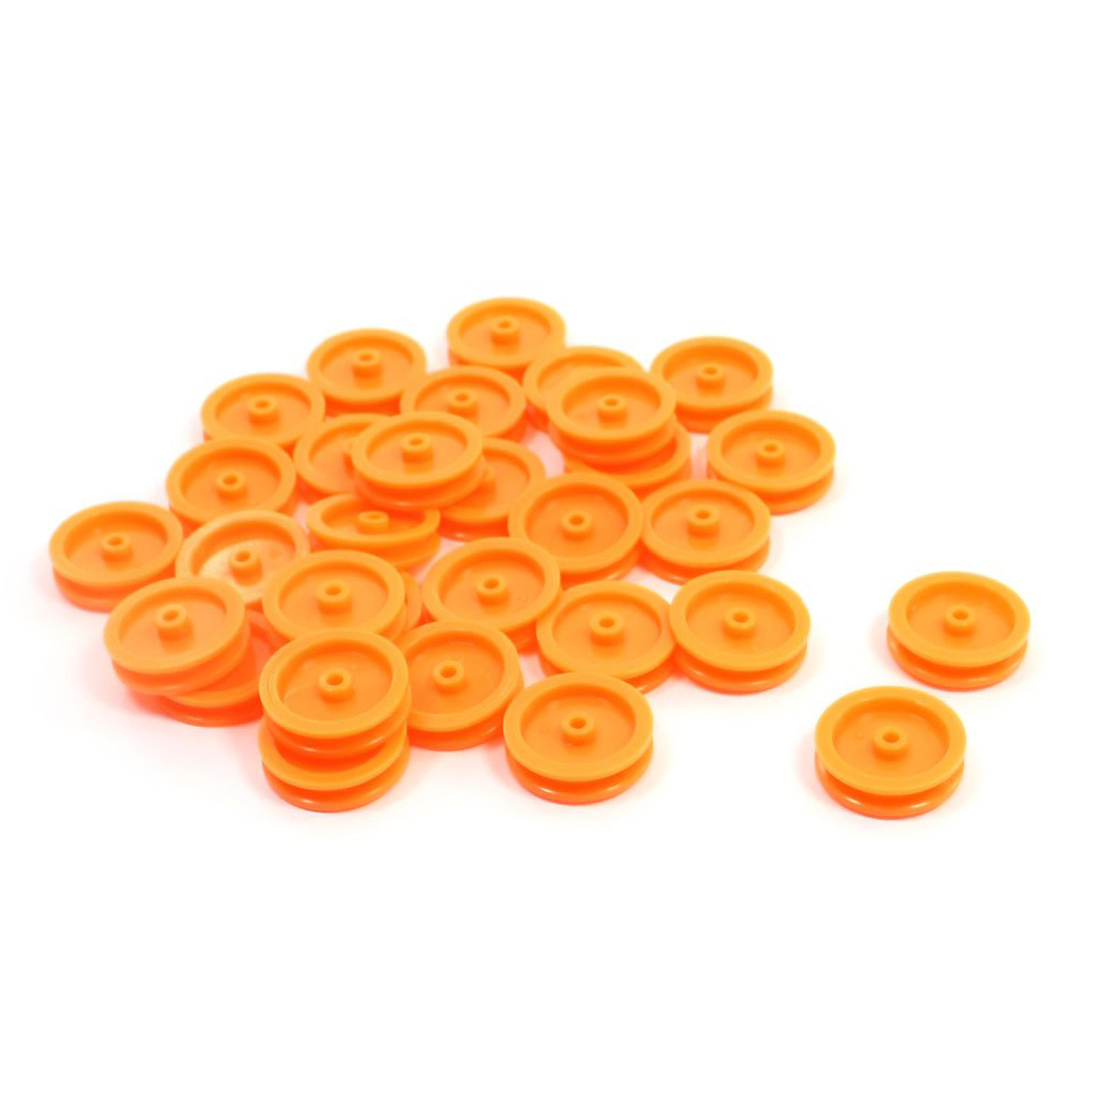 New 30 Pcs 2mm Hole Orange Plastic Belt <font><b>Pulley</b></font> for DIY RC Toy <font><b>Car</b></font> Airplane image